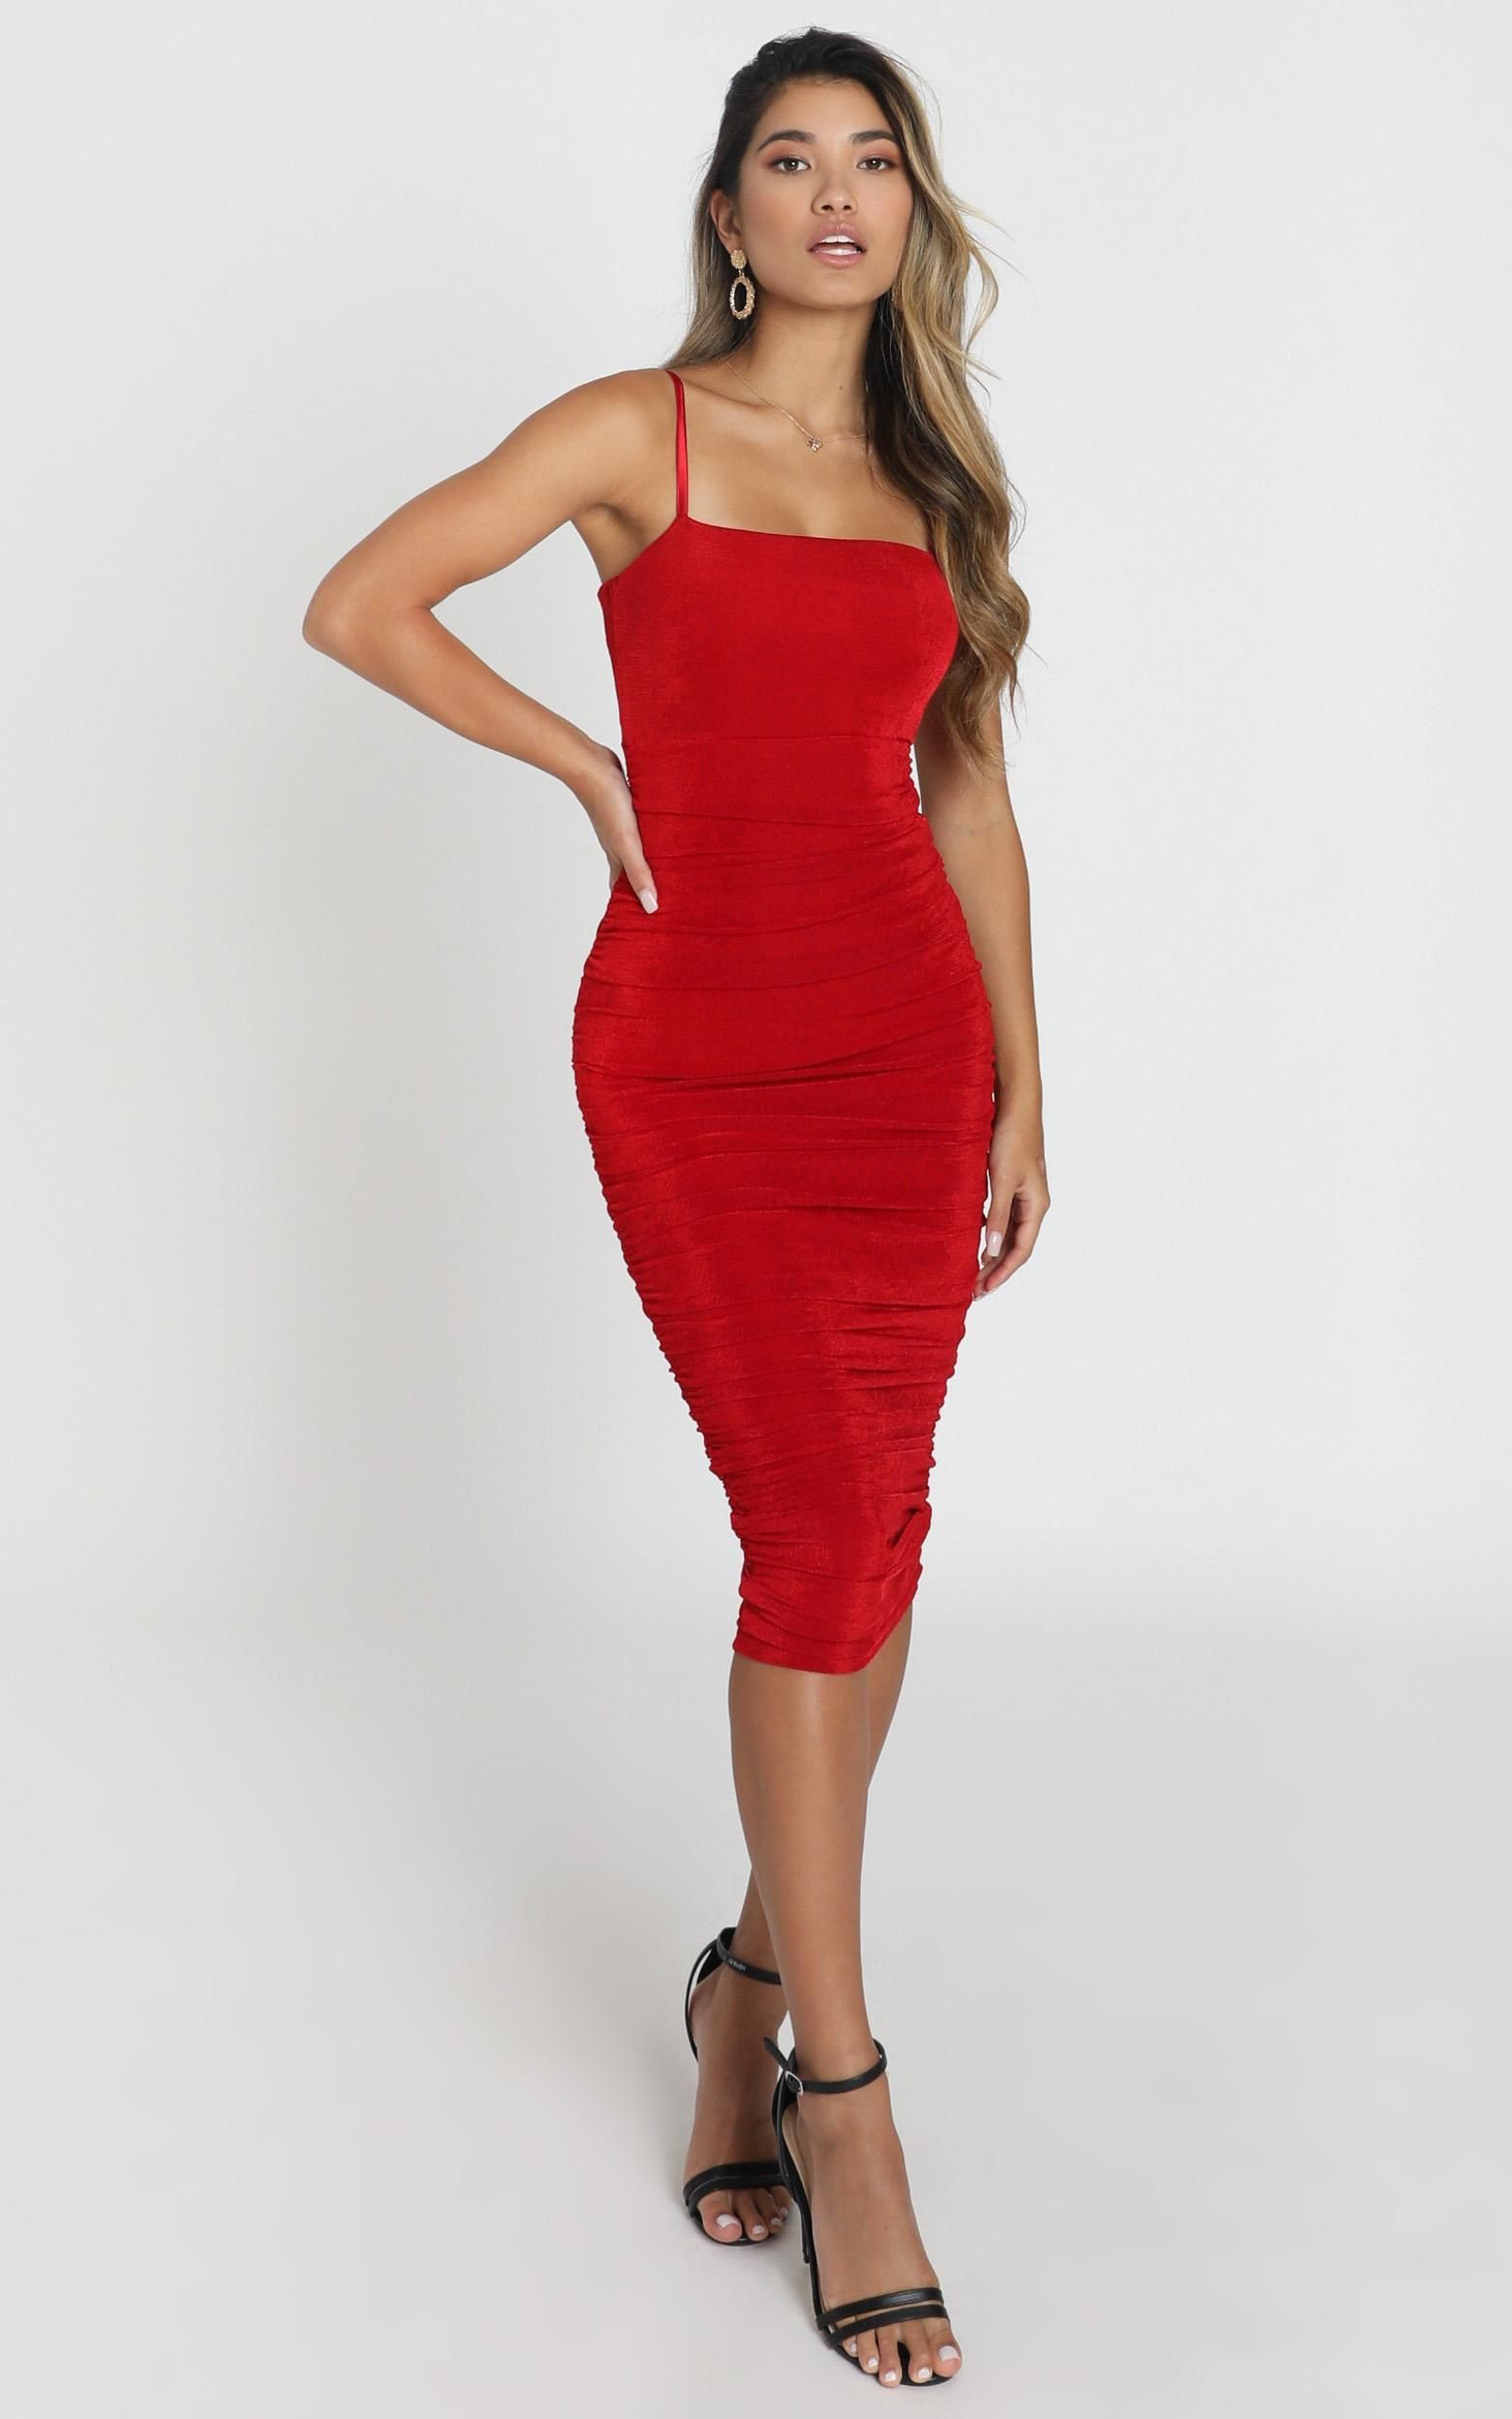 Commit To Me Maxi Dress In Red Showpo In 2020 Dresses Maxi Dress Dress Making